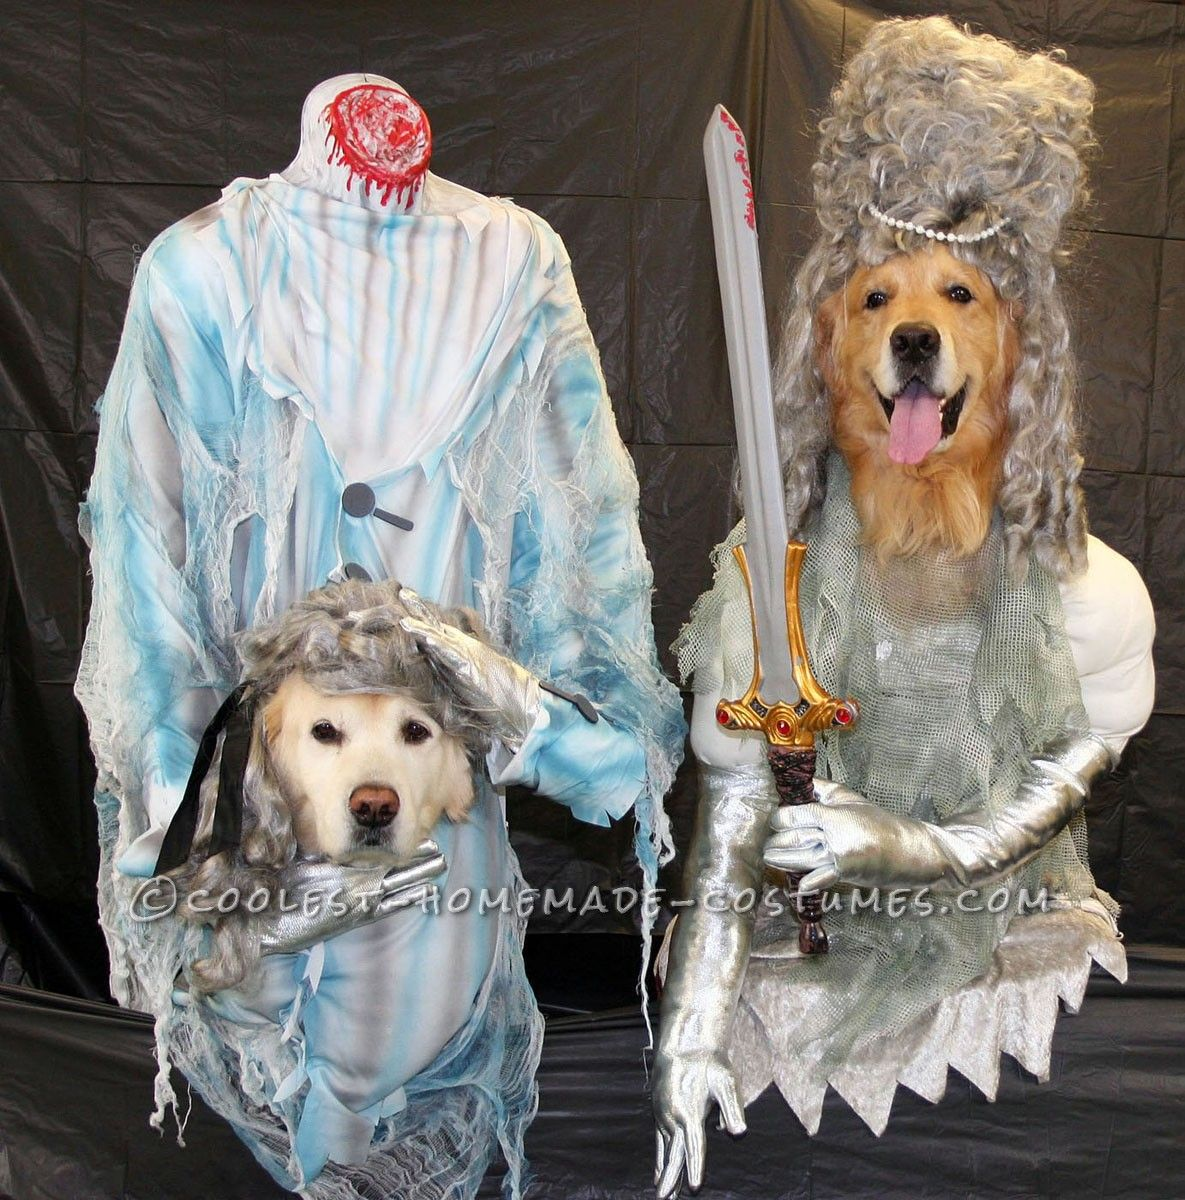 Original Dog Costumes Headless Ghosts Of The 1700 S Dog